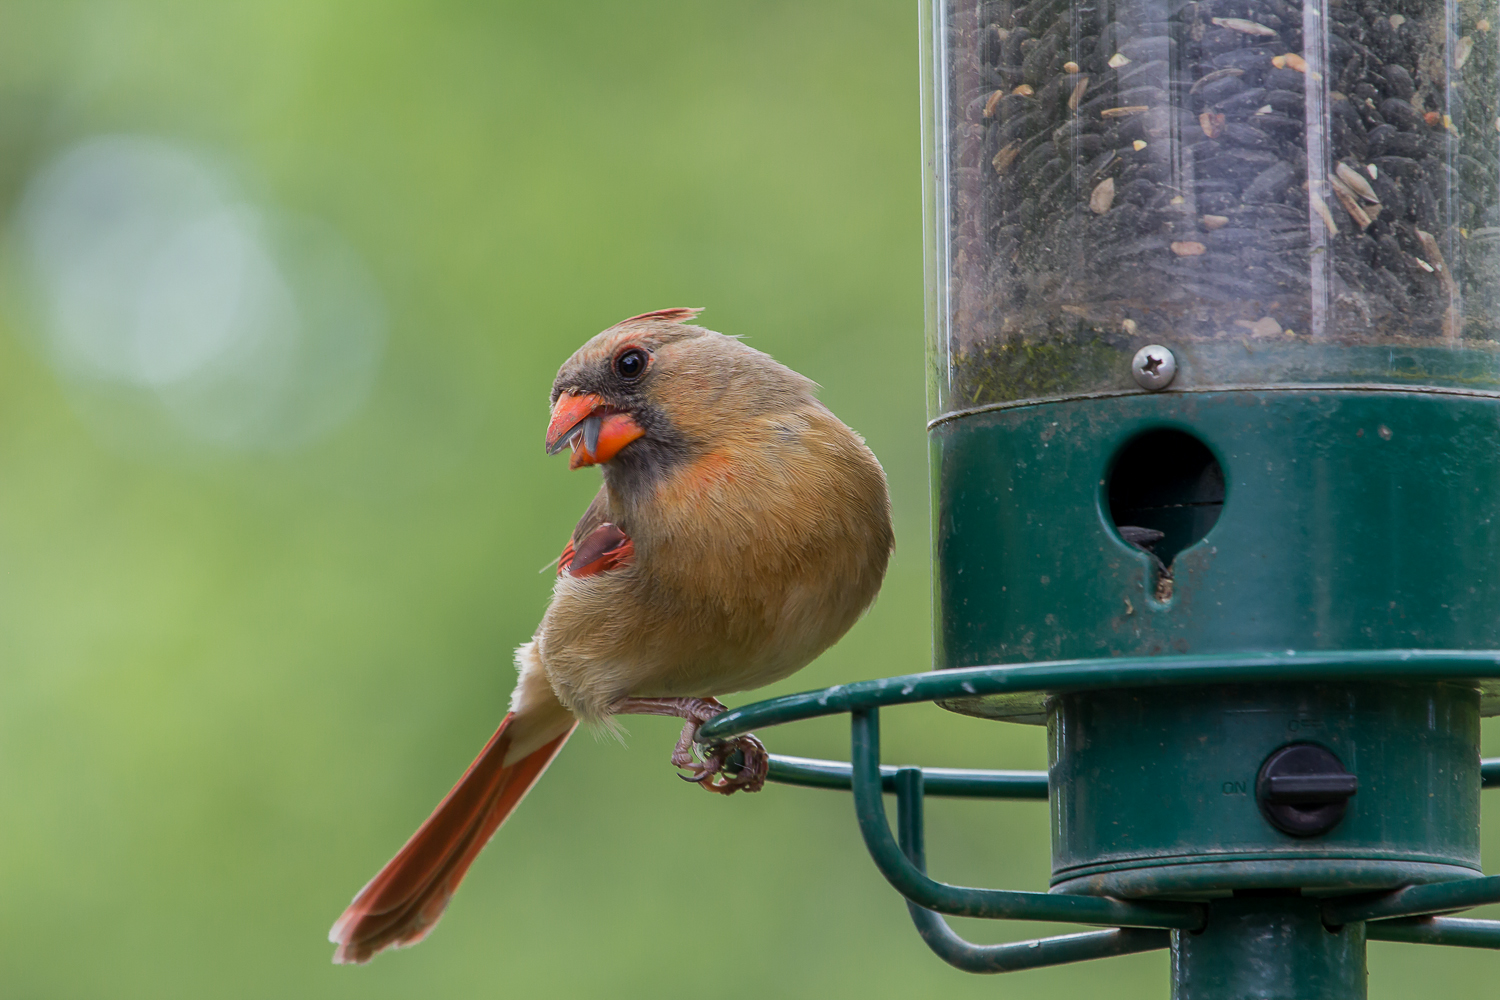 IMG 4162 1 - Spring Cleanup Will Ensure The Health Of Your Backyard Birds